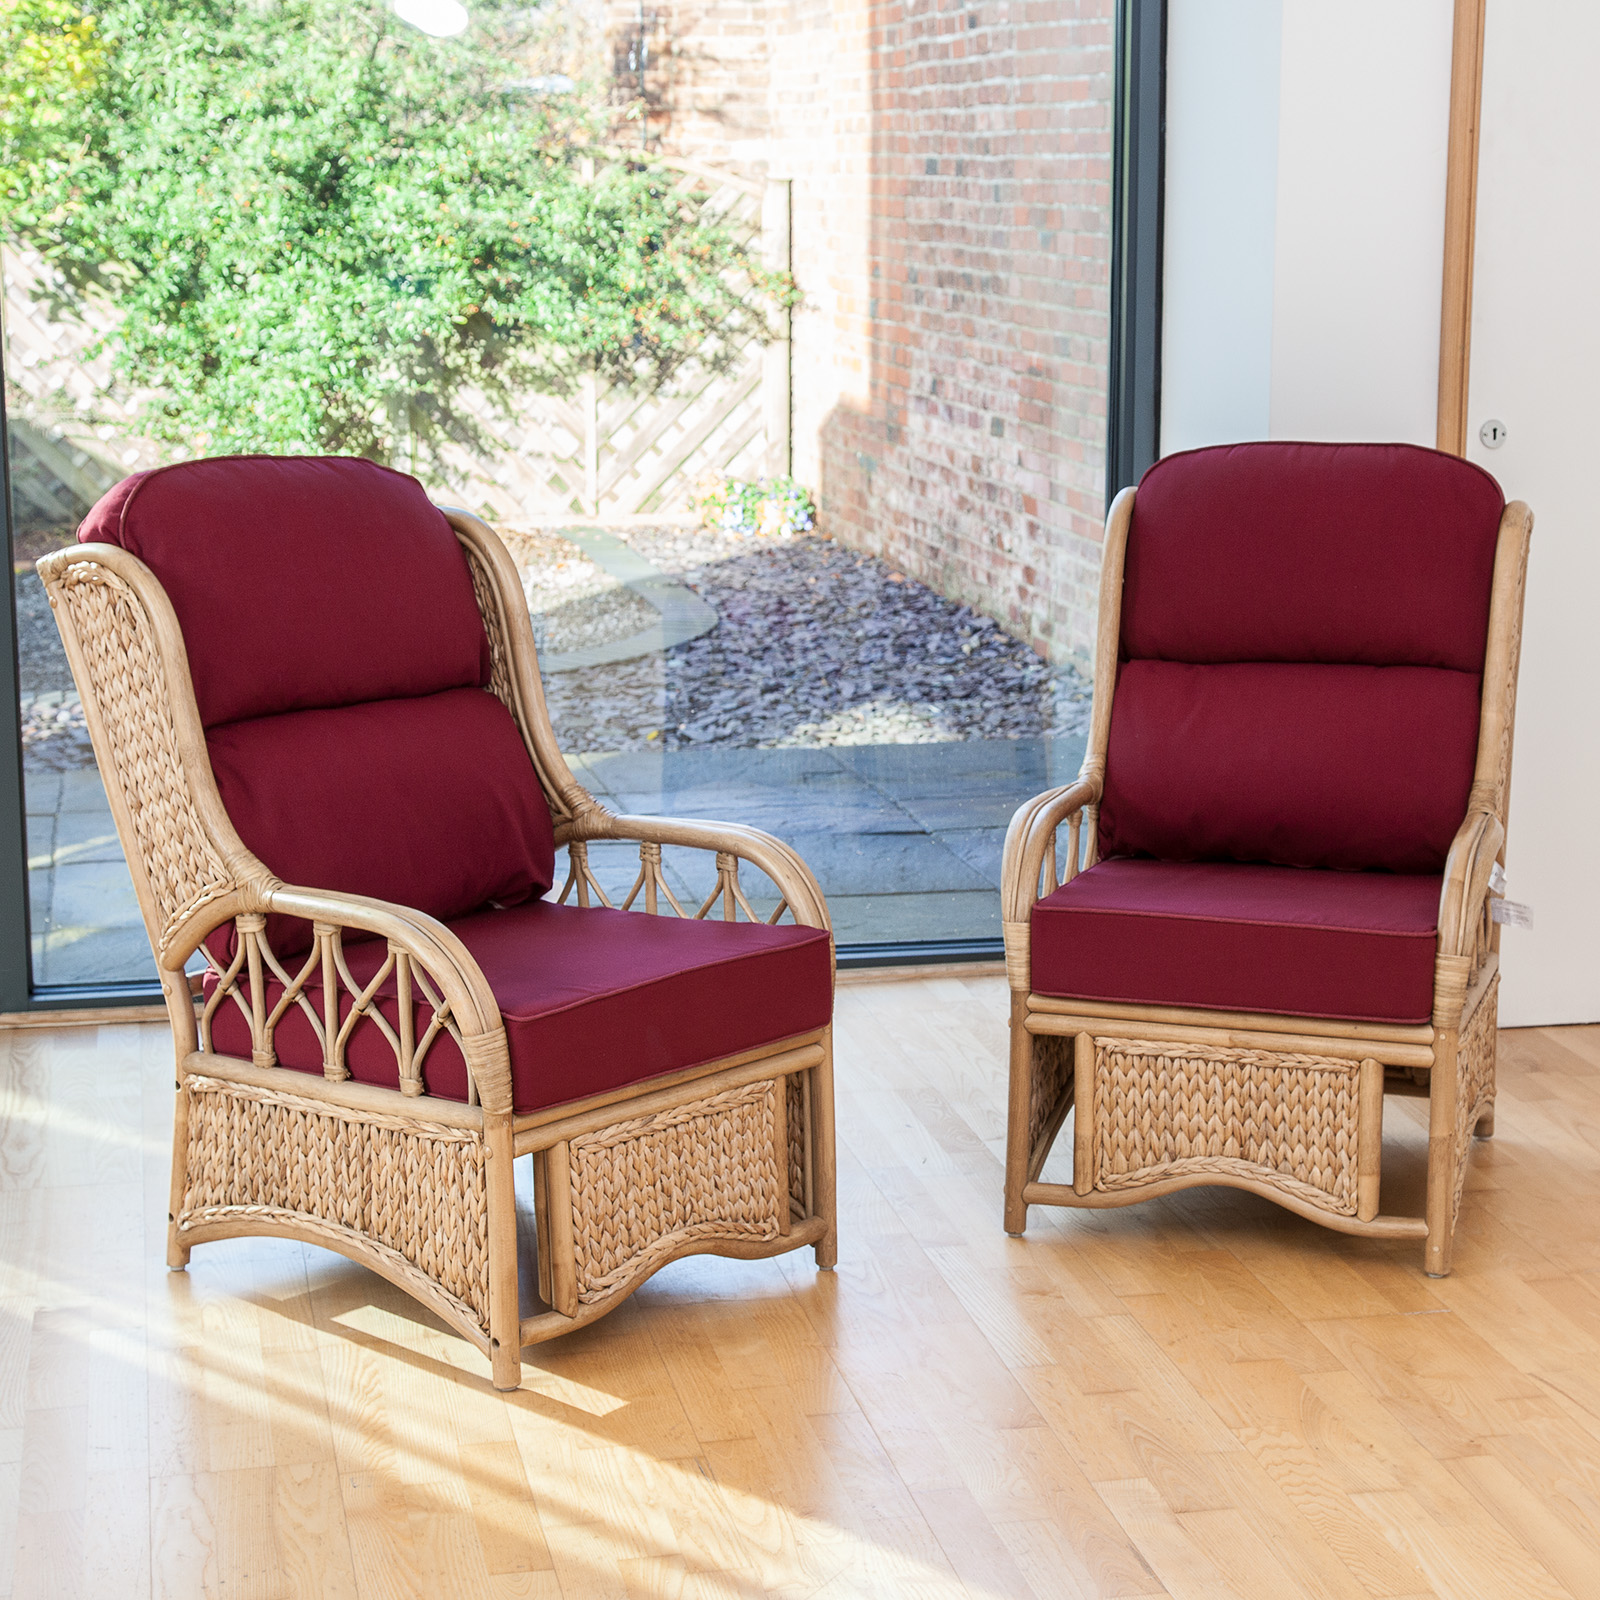 Alfresia 2 Penang Cane Conservatory Furniture Armchairs